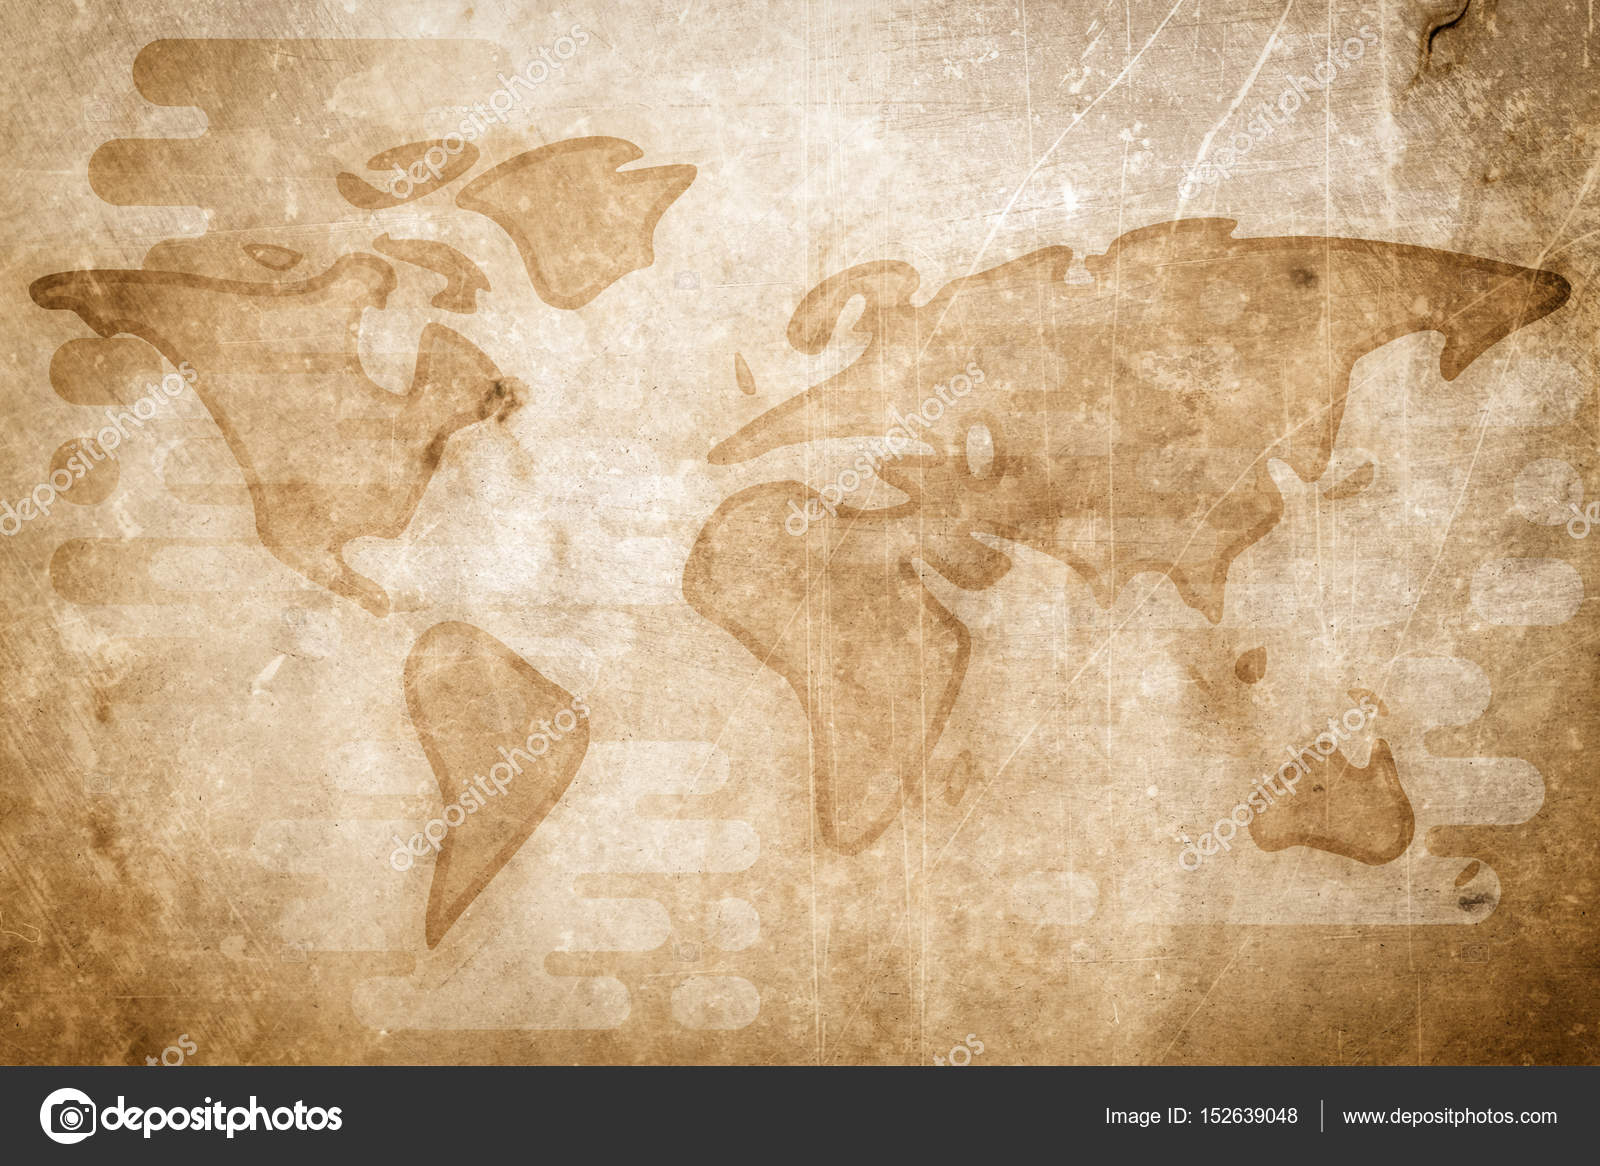 World map cartoon textured flat illustration stock photo world map simple cartoon illustration flat style with textures photo by lisaalisaill gumiabroncs Choice Image